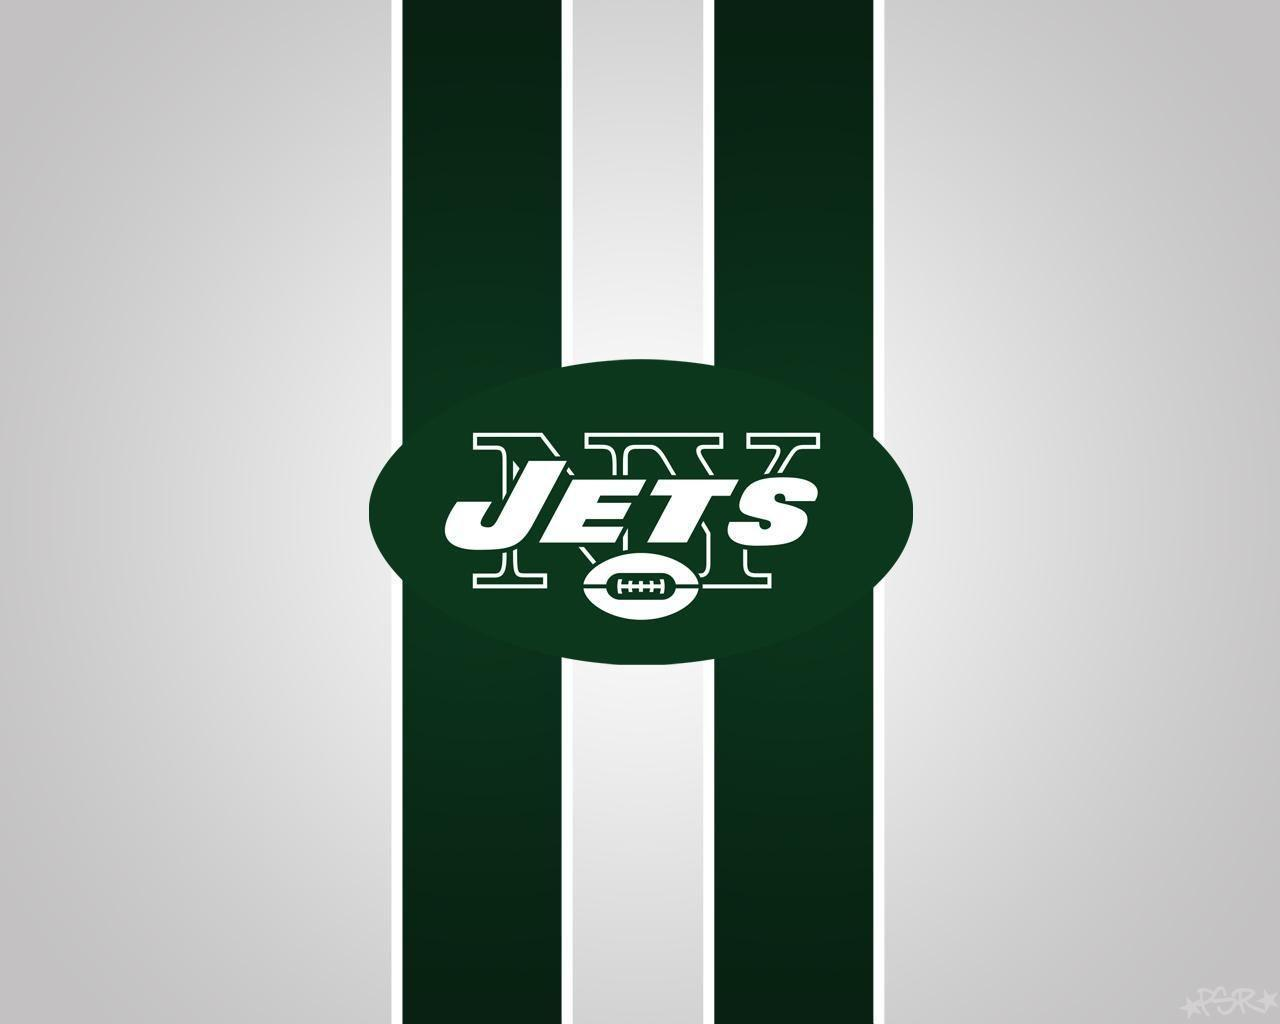 New York Jets Wallpapers HD Download